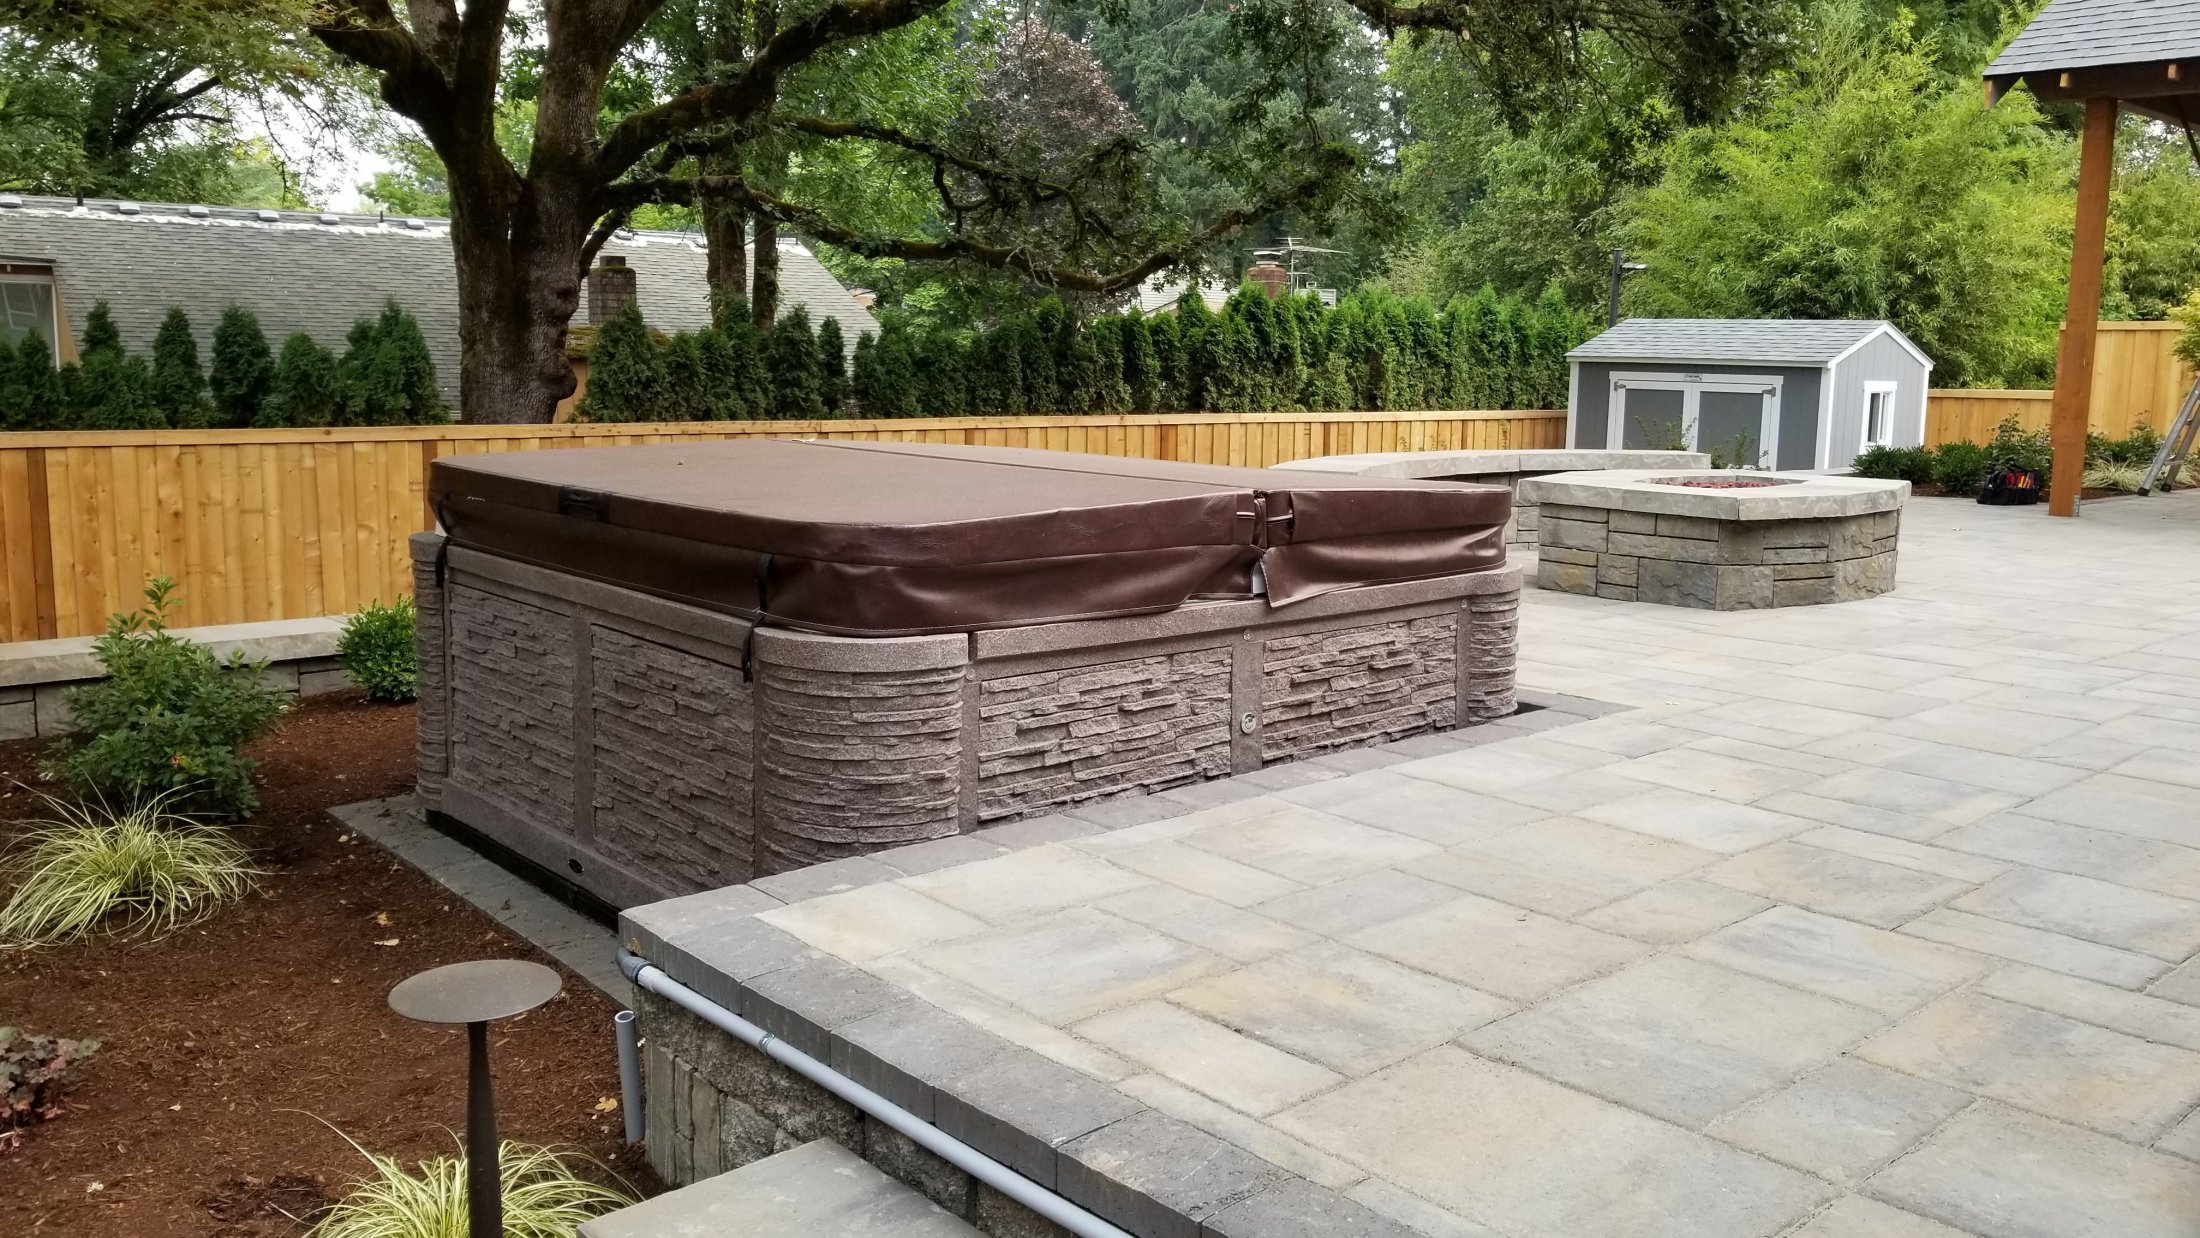 Lowered Hot Tub Area, Paver Patio, Fire Pit